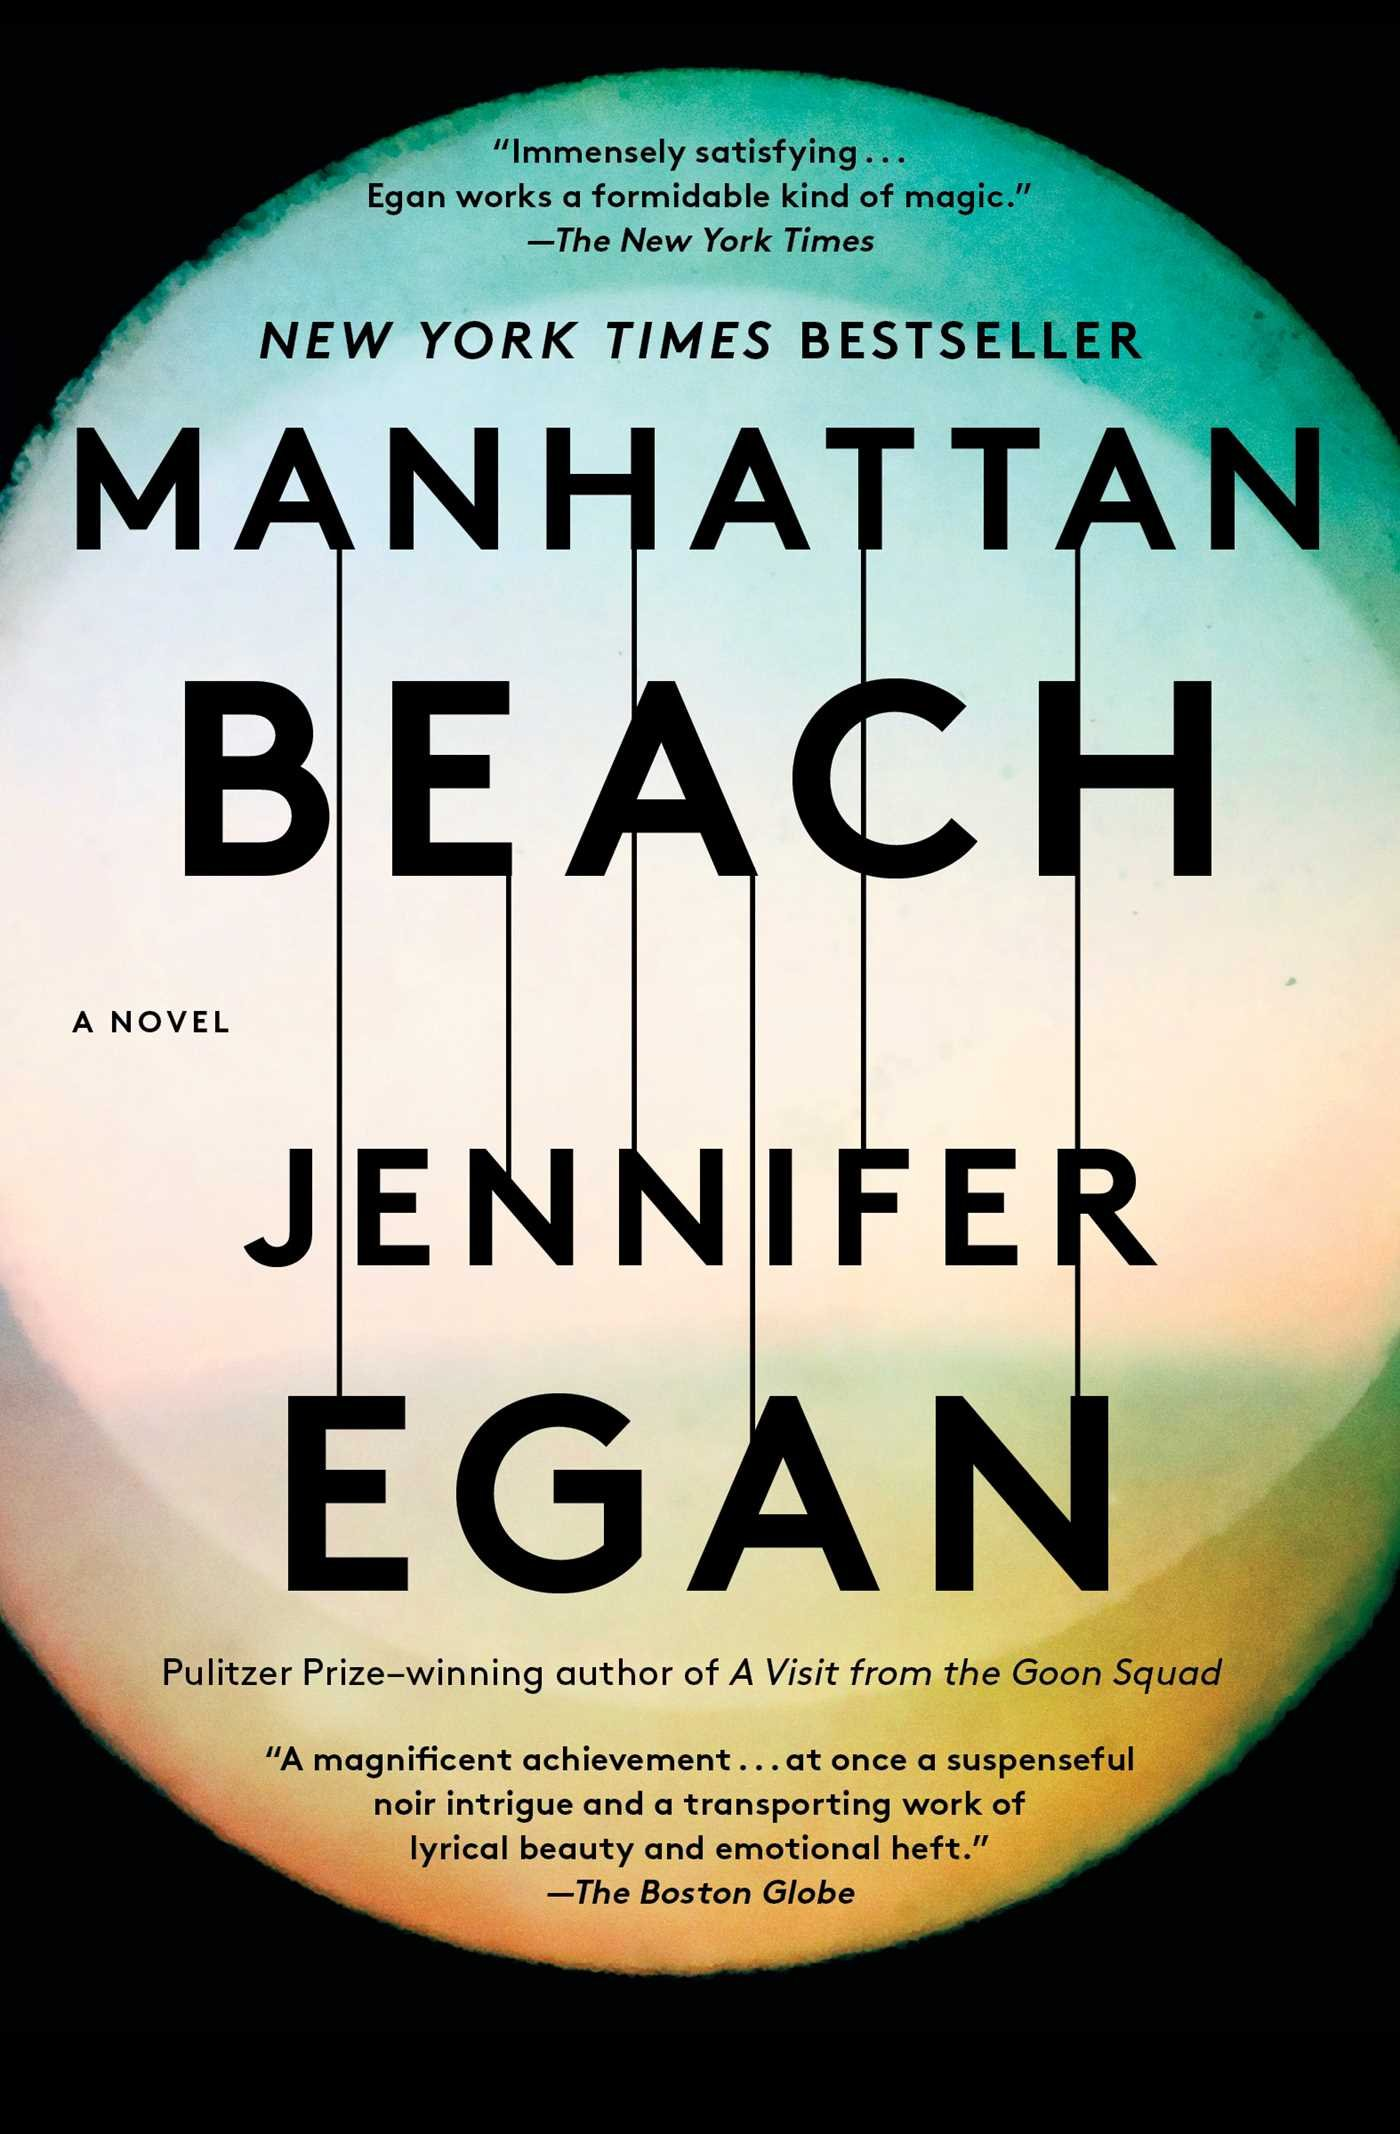 Manhattan Beach: A Novel: Jennifer Egan: 9781476716749: Amazon.com: Books